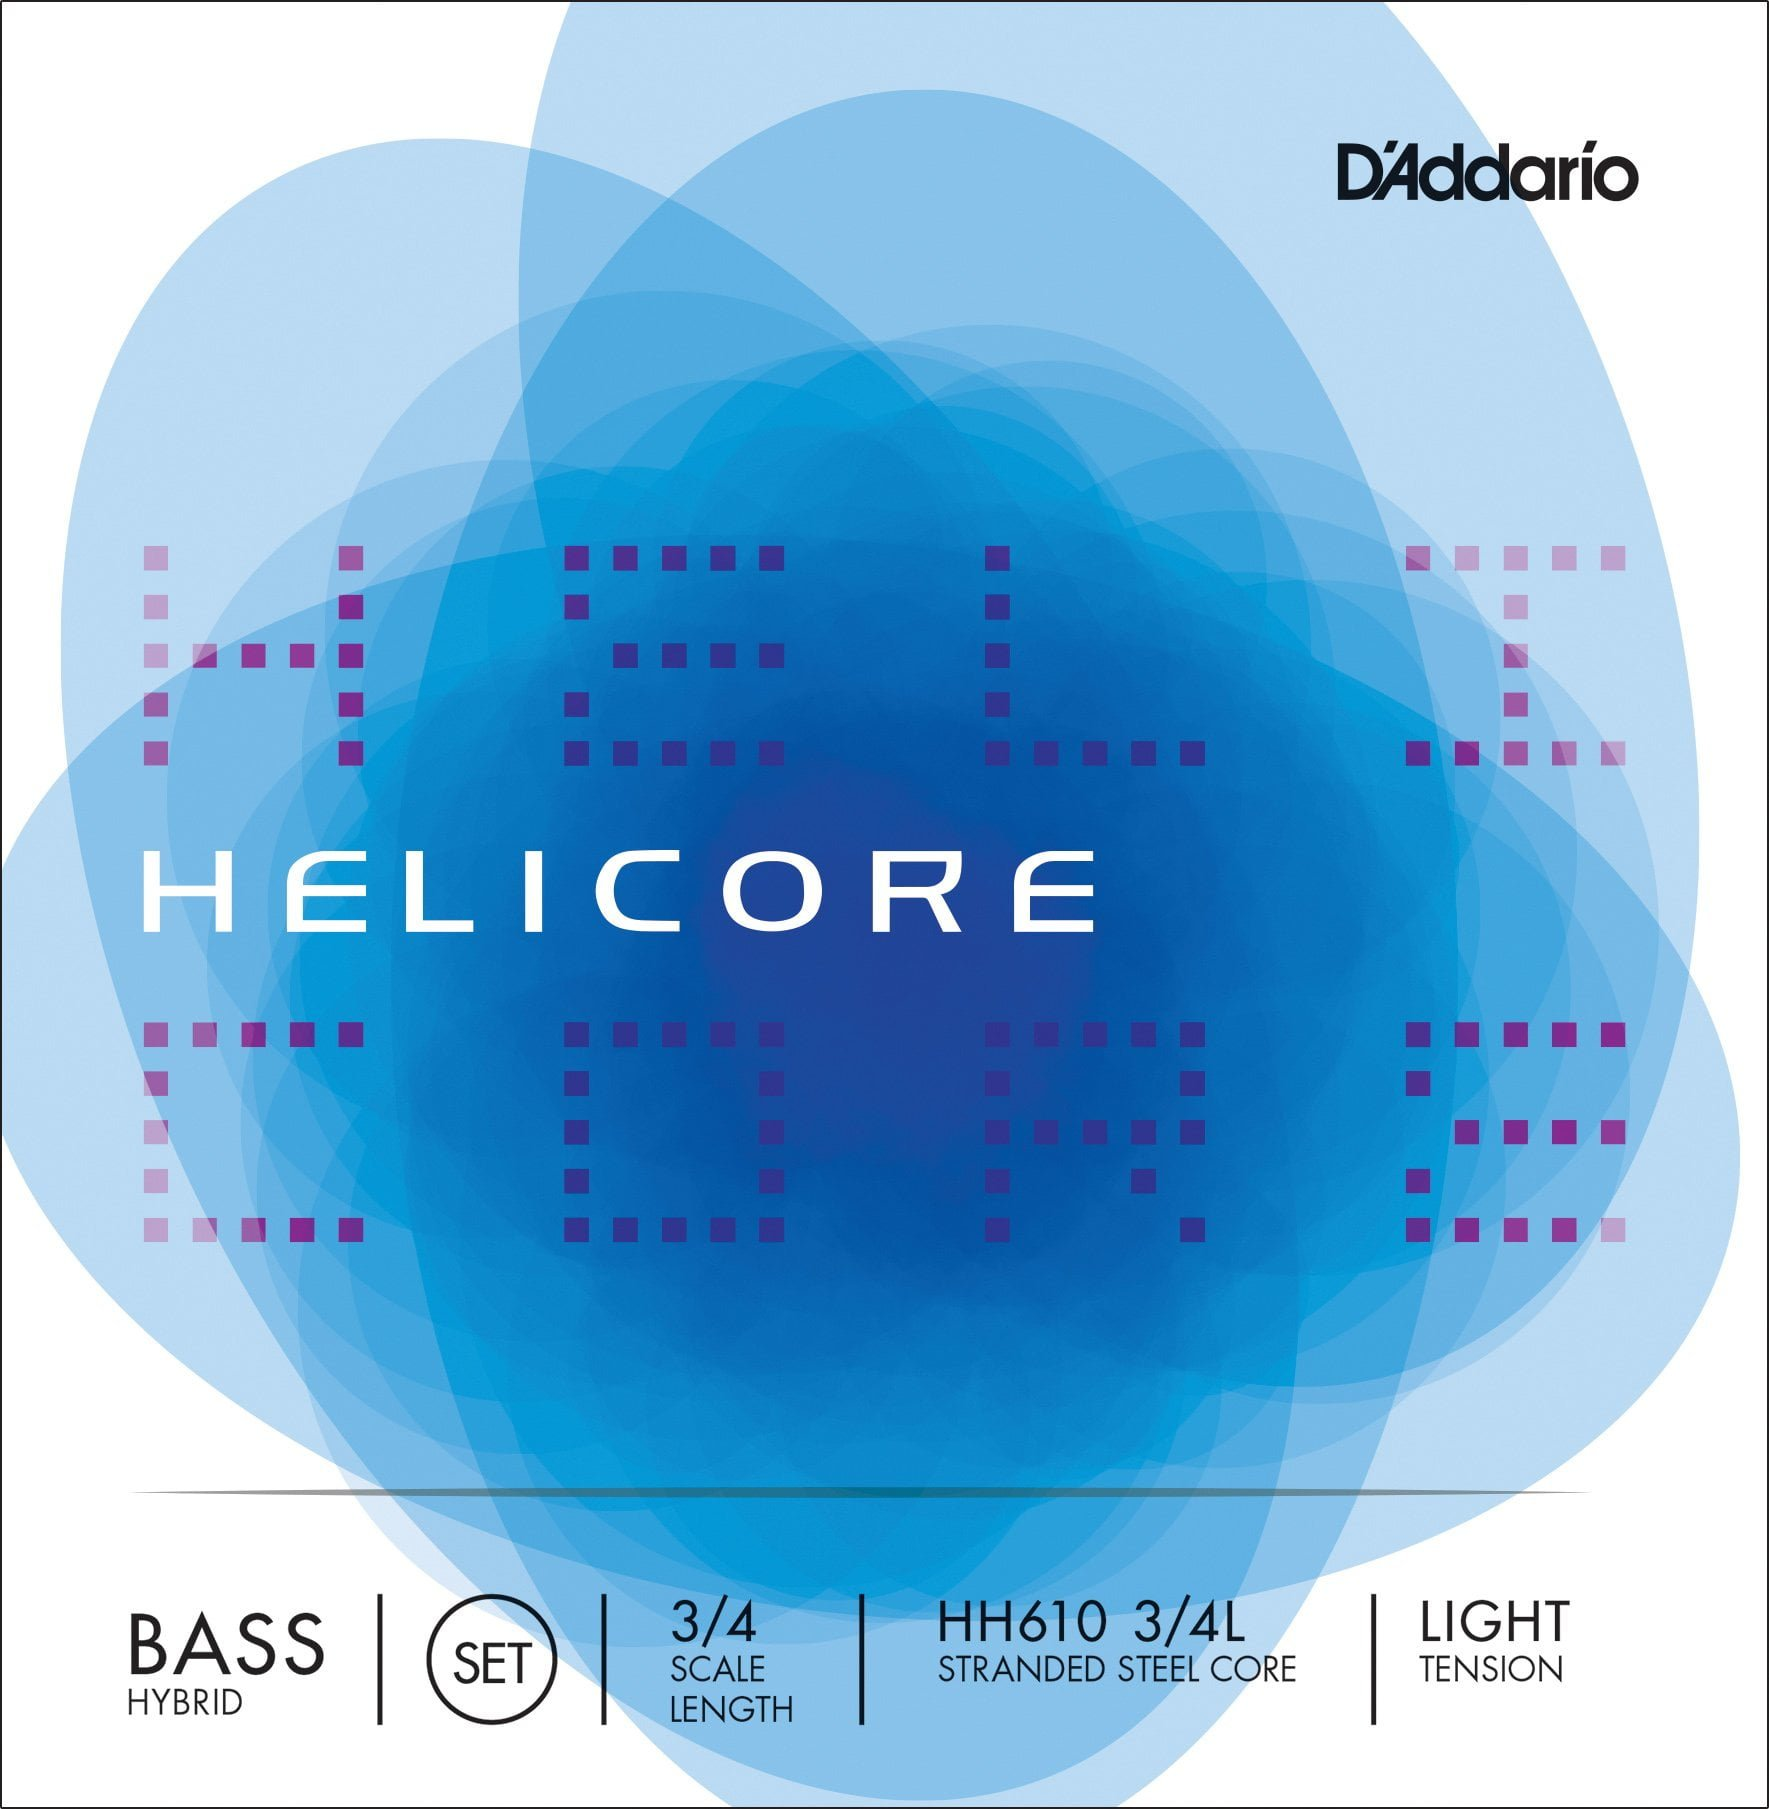 Helicore Hybrid Double Bass Set of Strings 3/4 Low